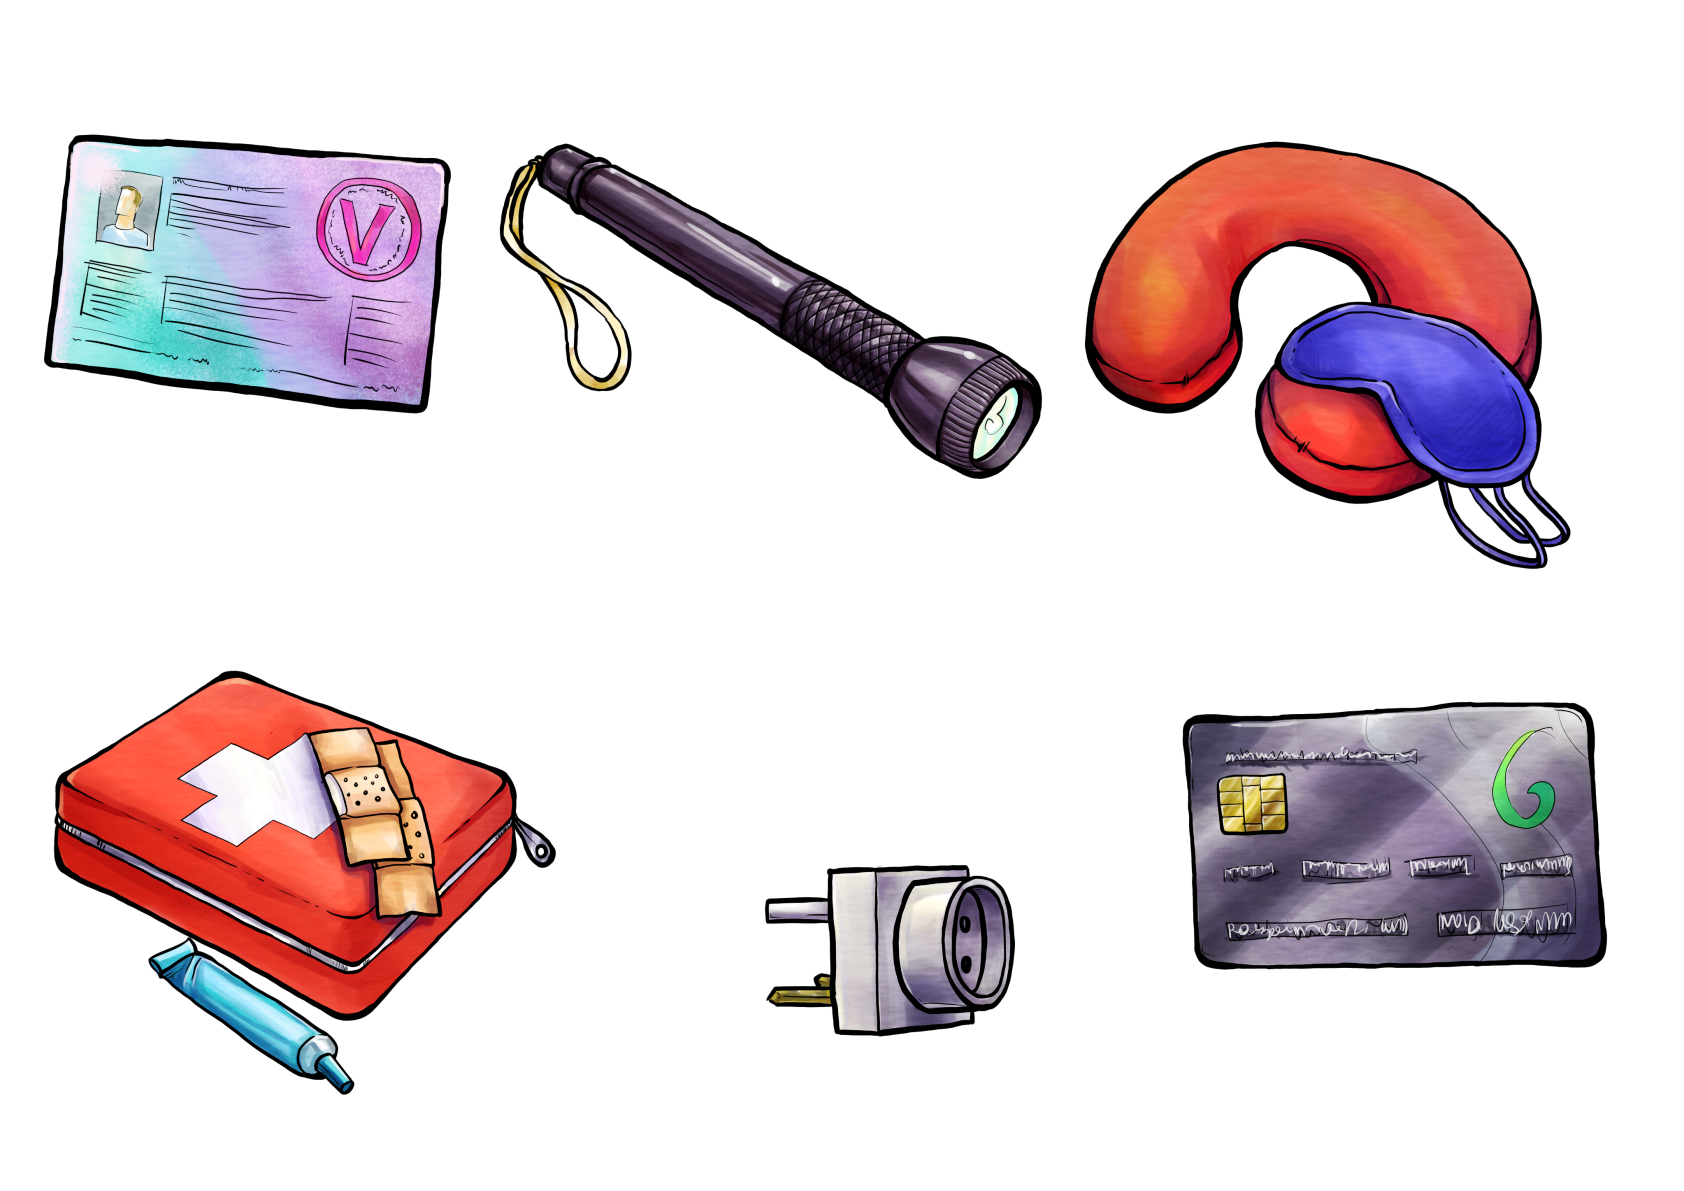 Illustrations for a game about traveling and holidays. Showing a visa, a flashlight, first aid kit, charger and credit card. Client: Grubbe Media. Illustrationen für ein Reisepiel.